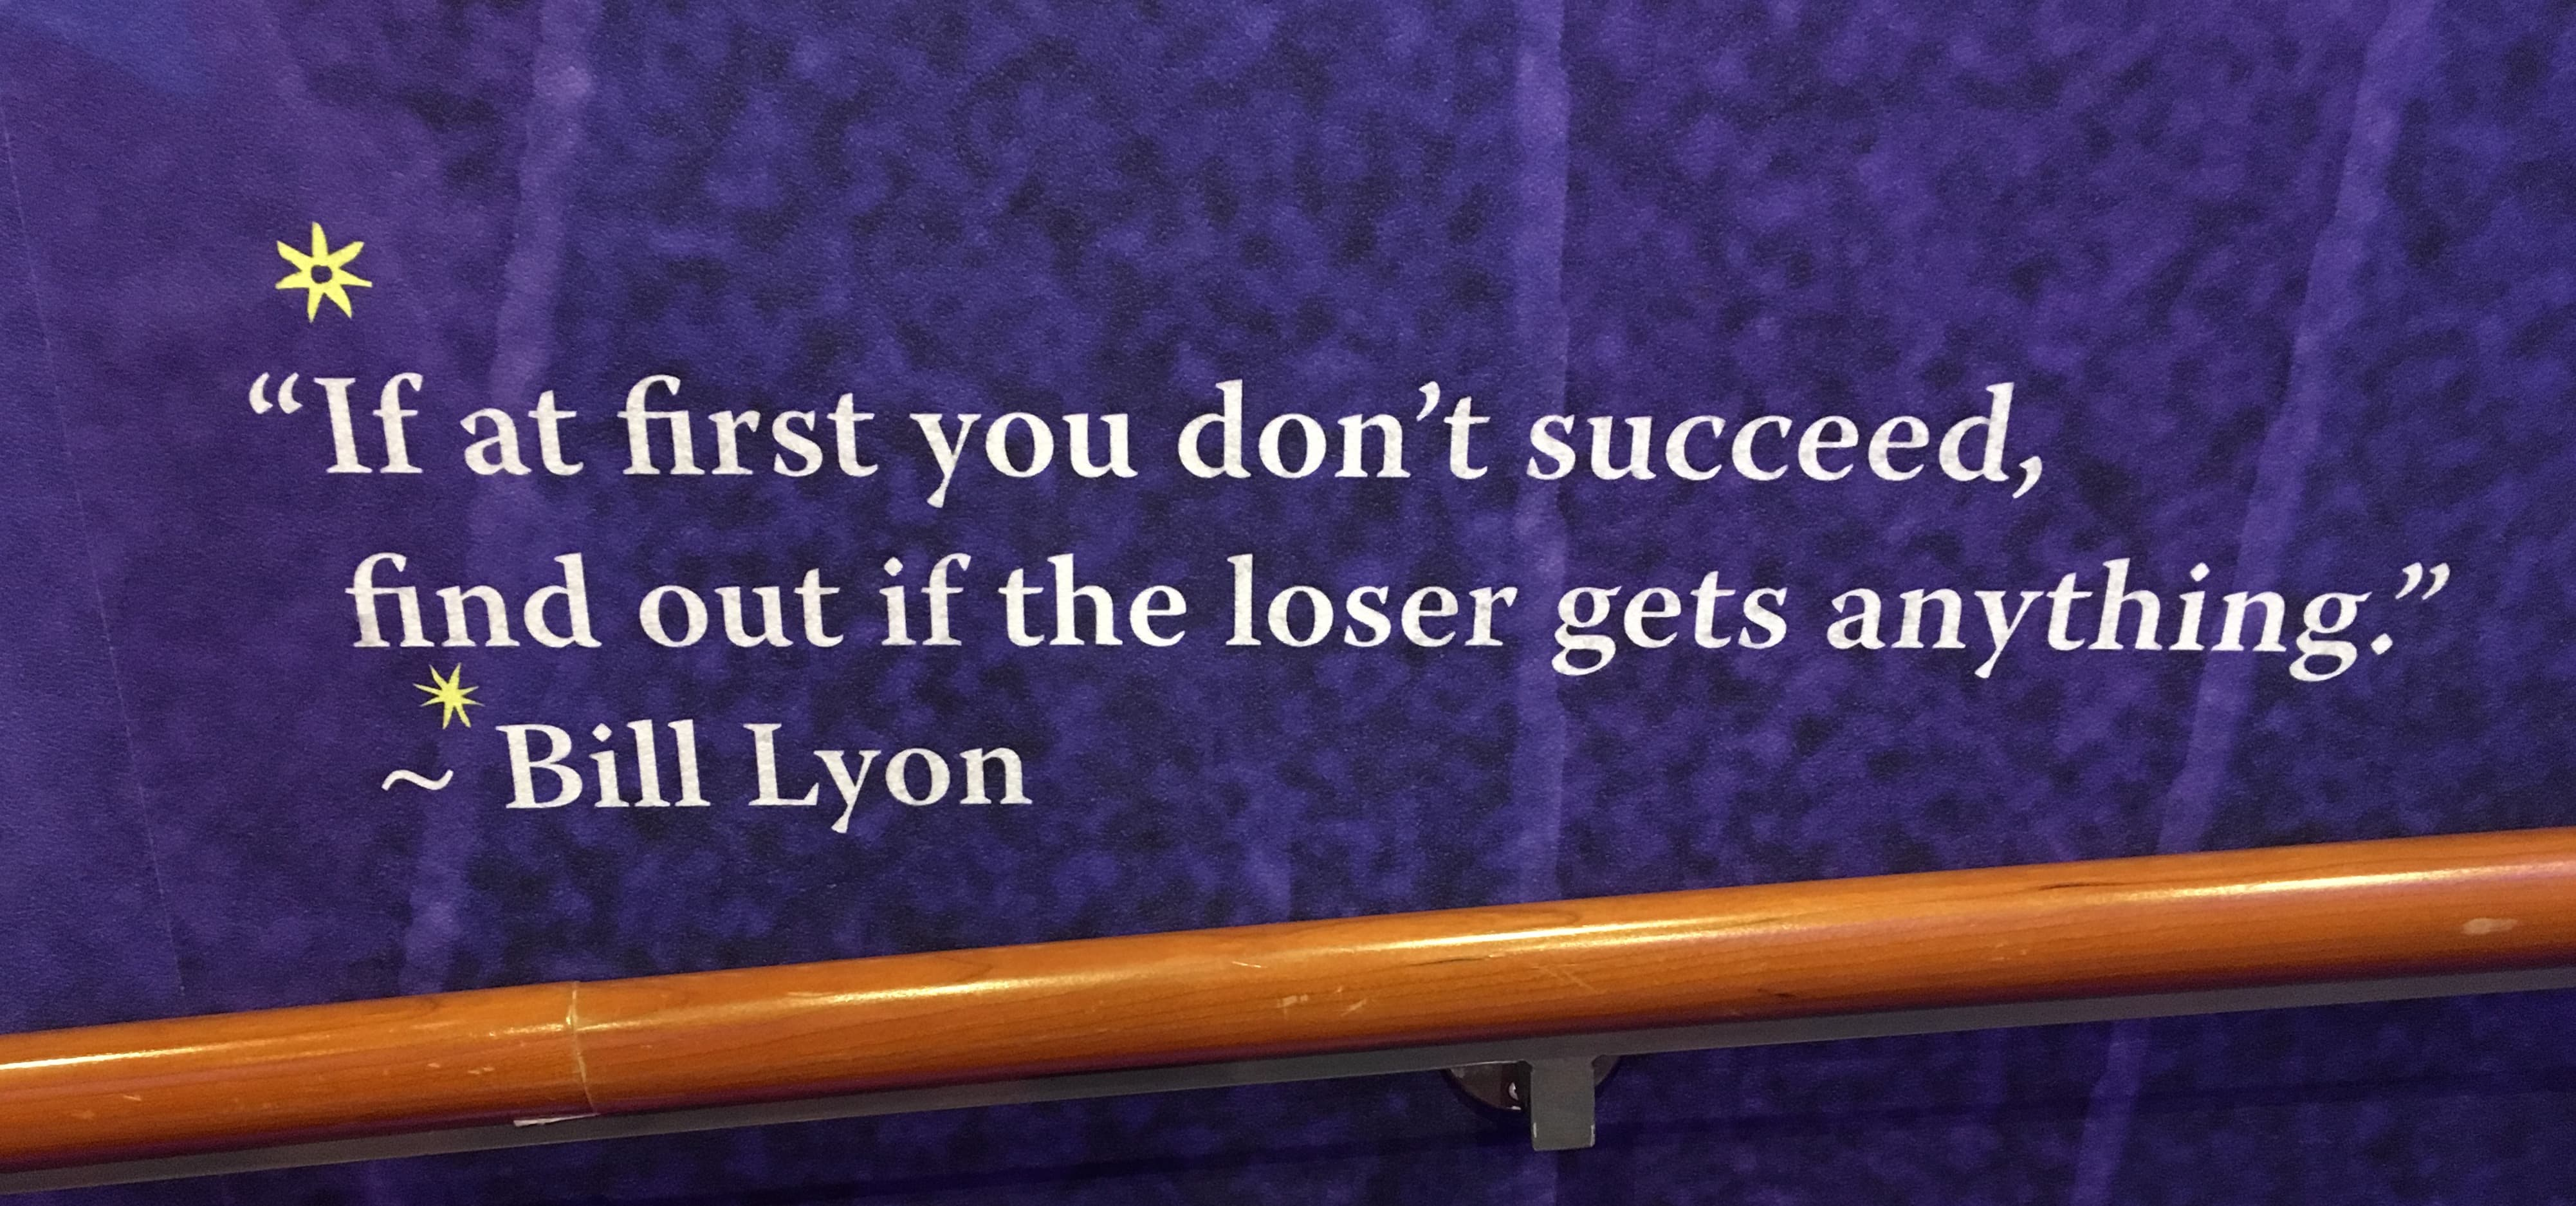 royal caribbean independence of the seas bill lyon quote